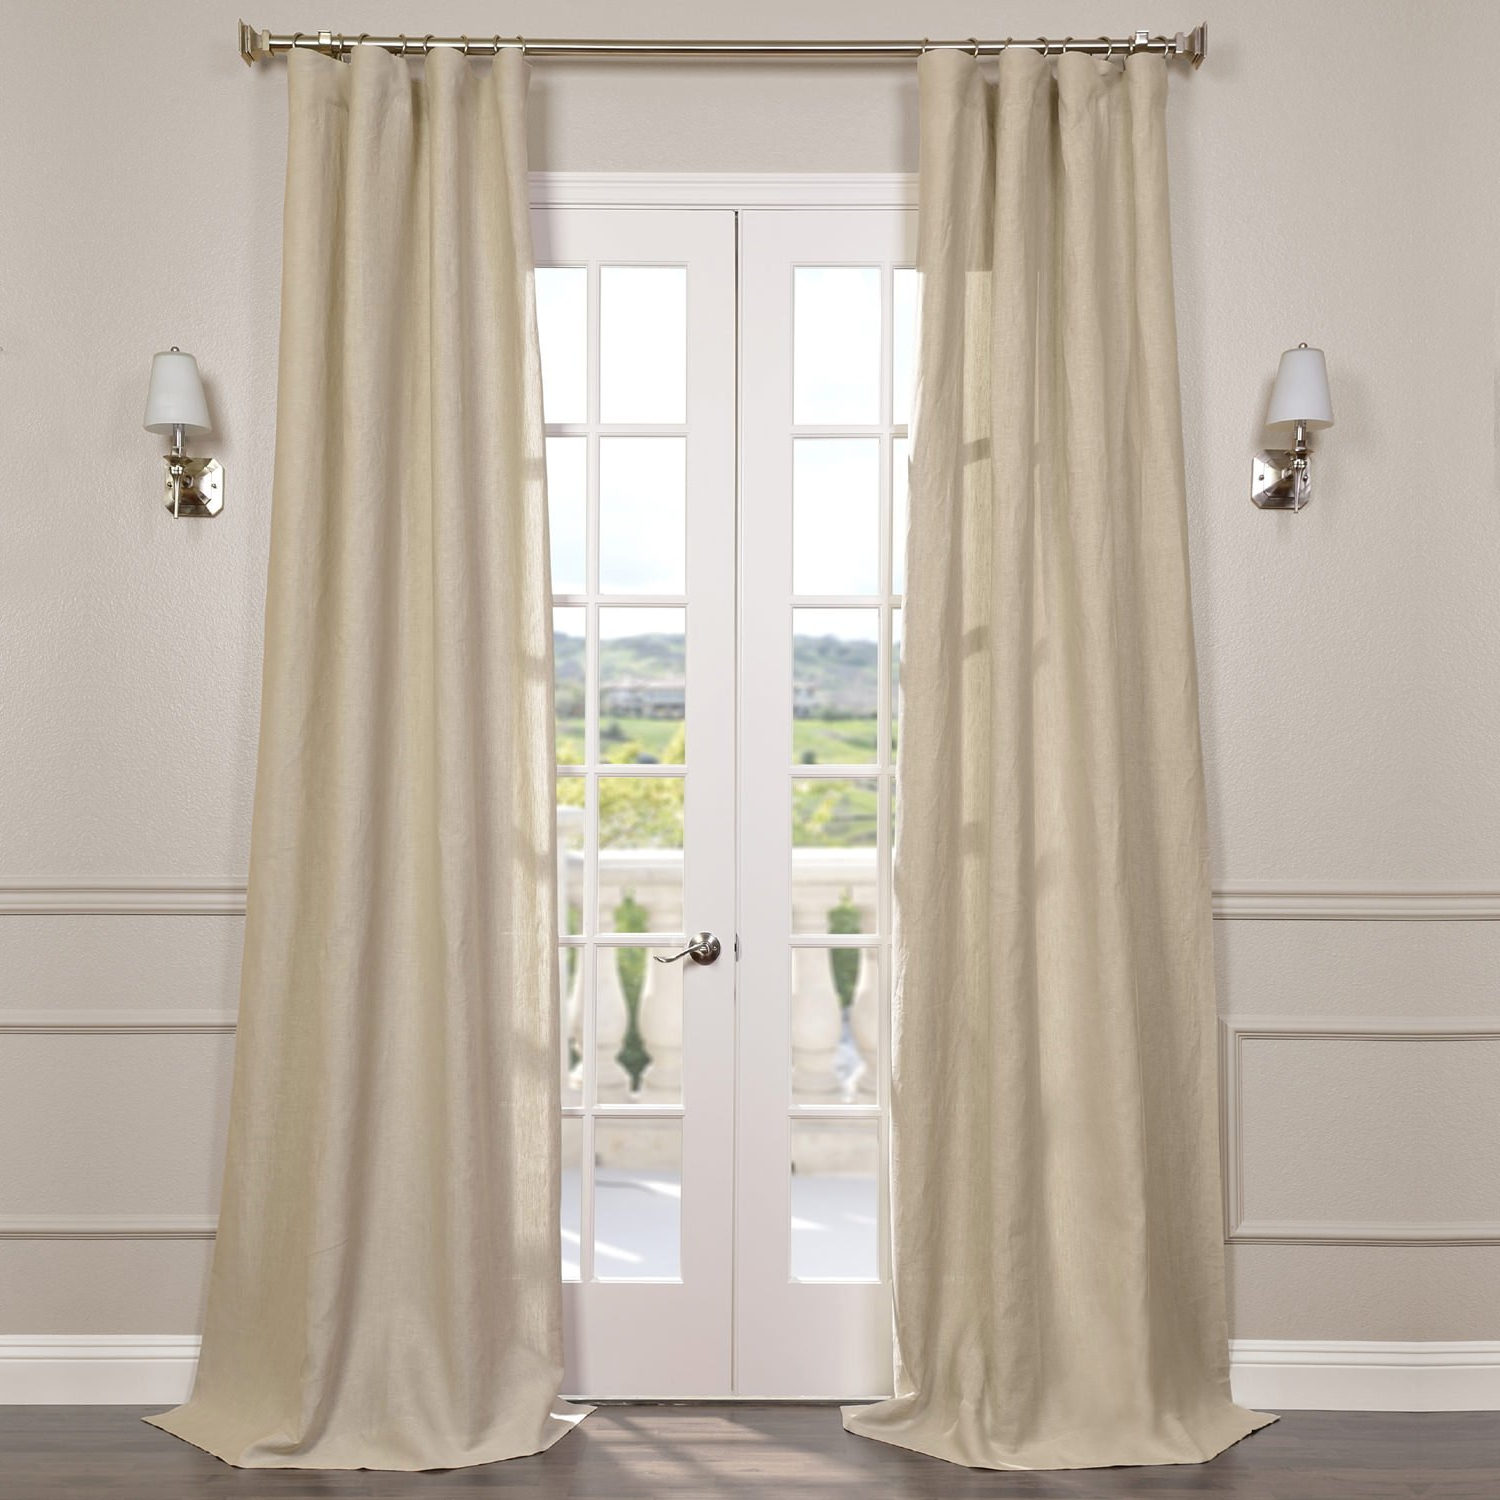 Well Liked Signature French Linen Curtain Panels Throughout Half Price Drapes Shlnch Gb1001032 108 Signature French Linen Sheer Curtain, Antique Lace (View 9 of 20)